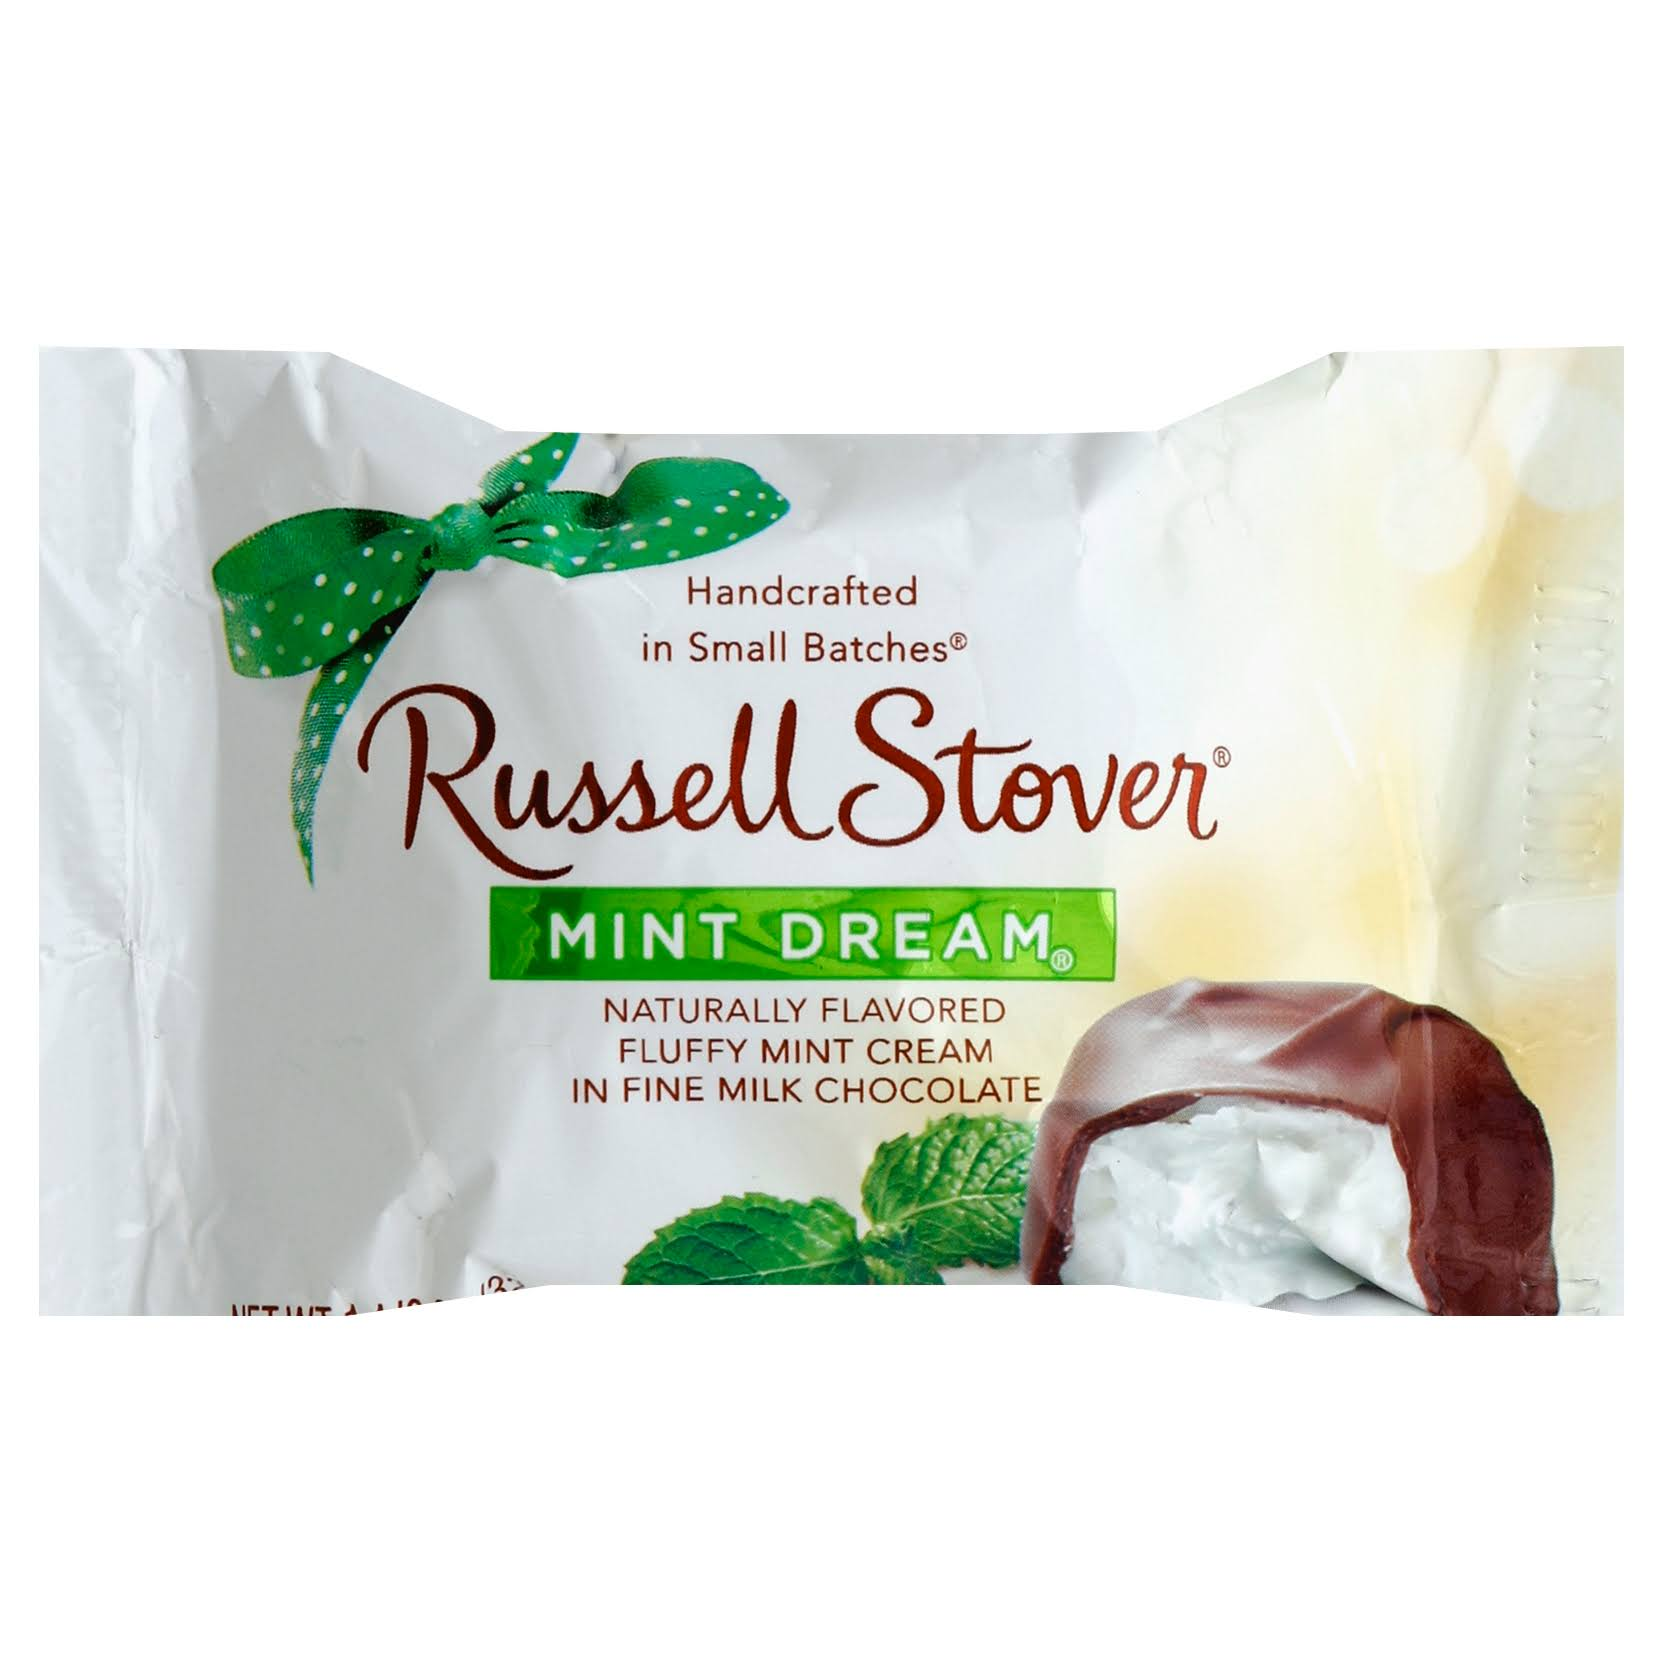 Russell Stover Mint Dream - 1.125 oz